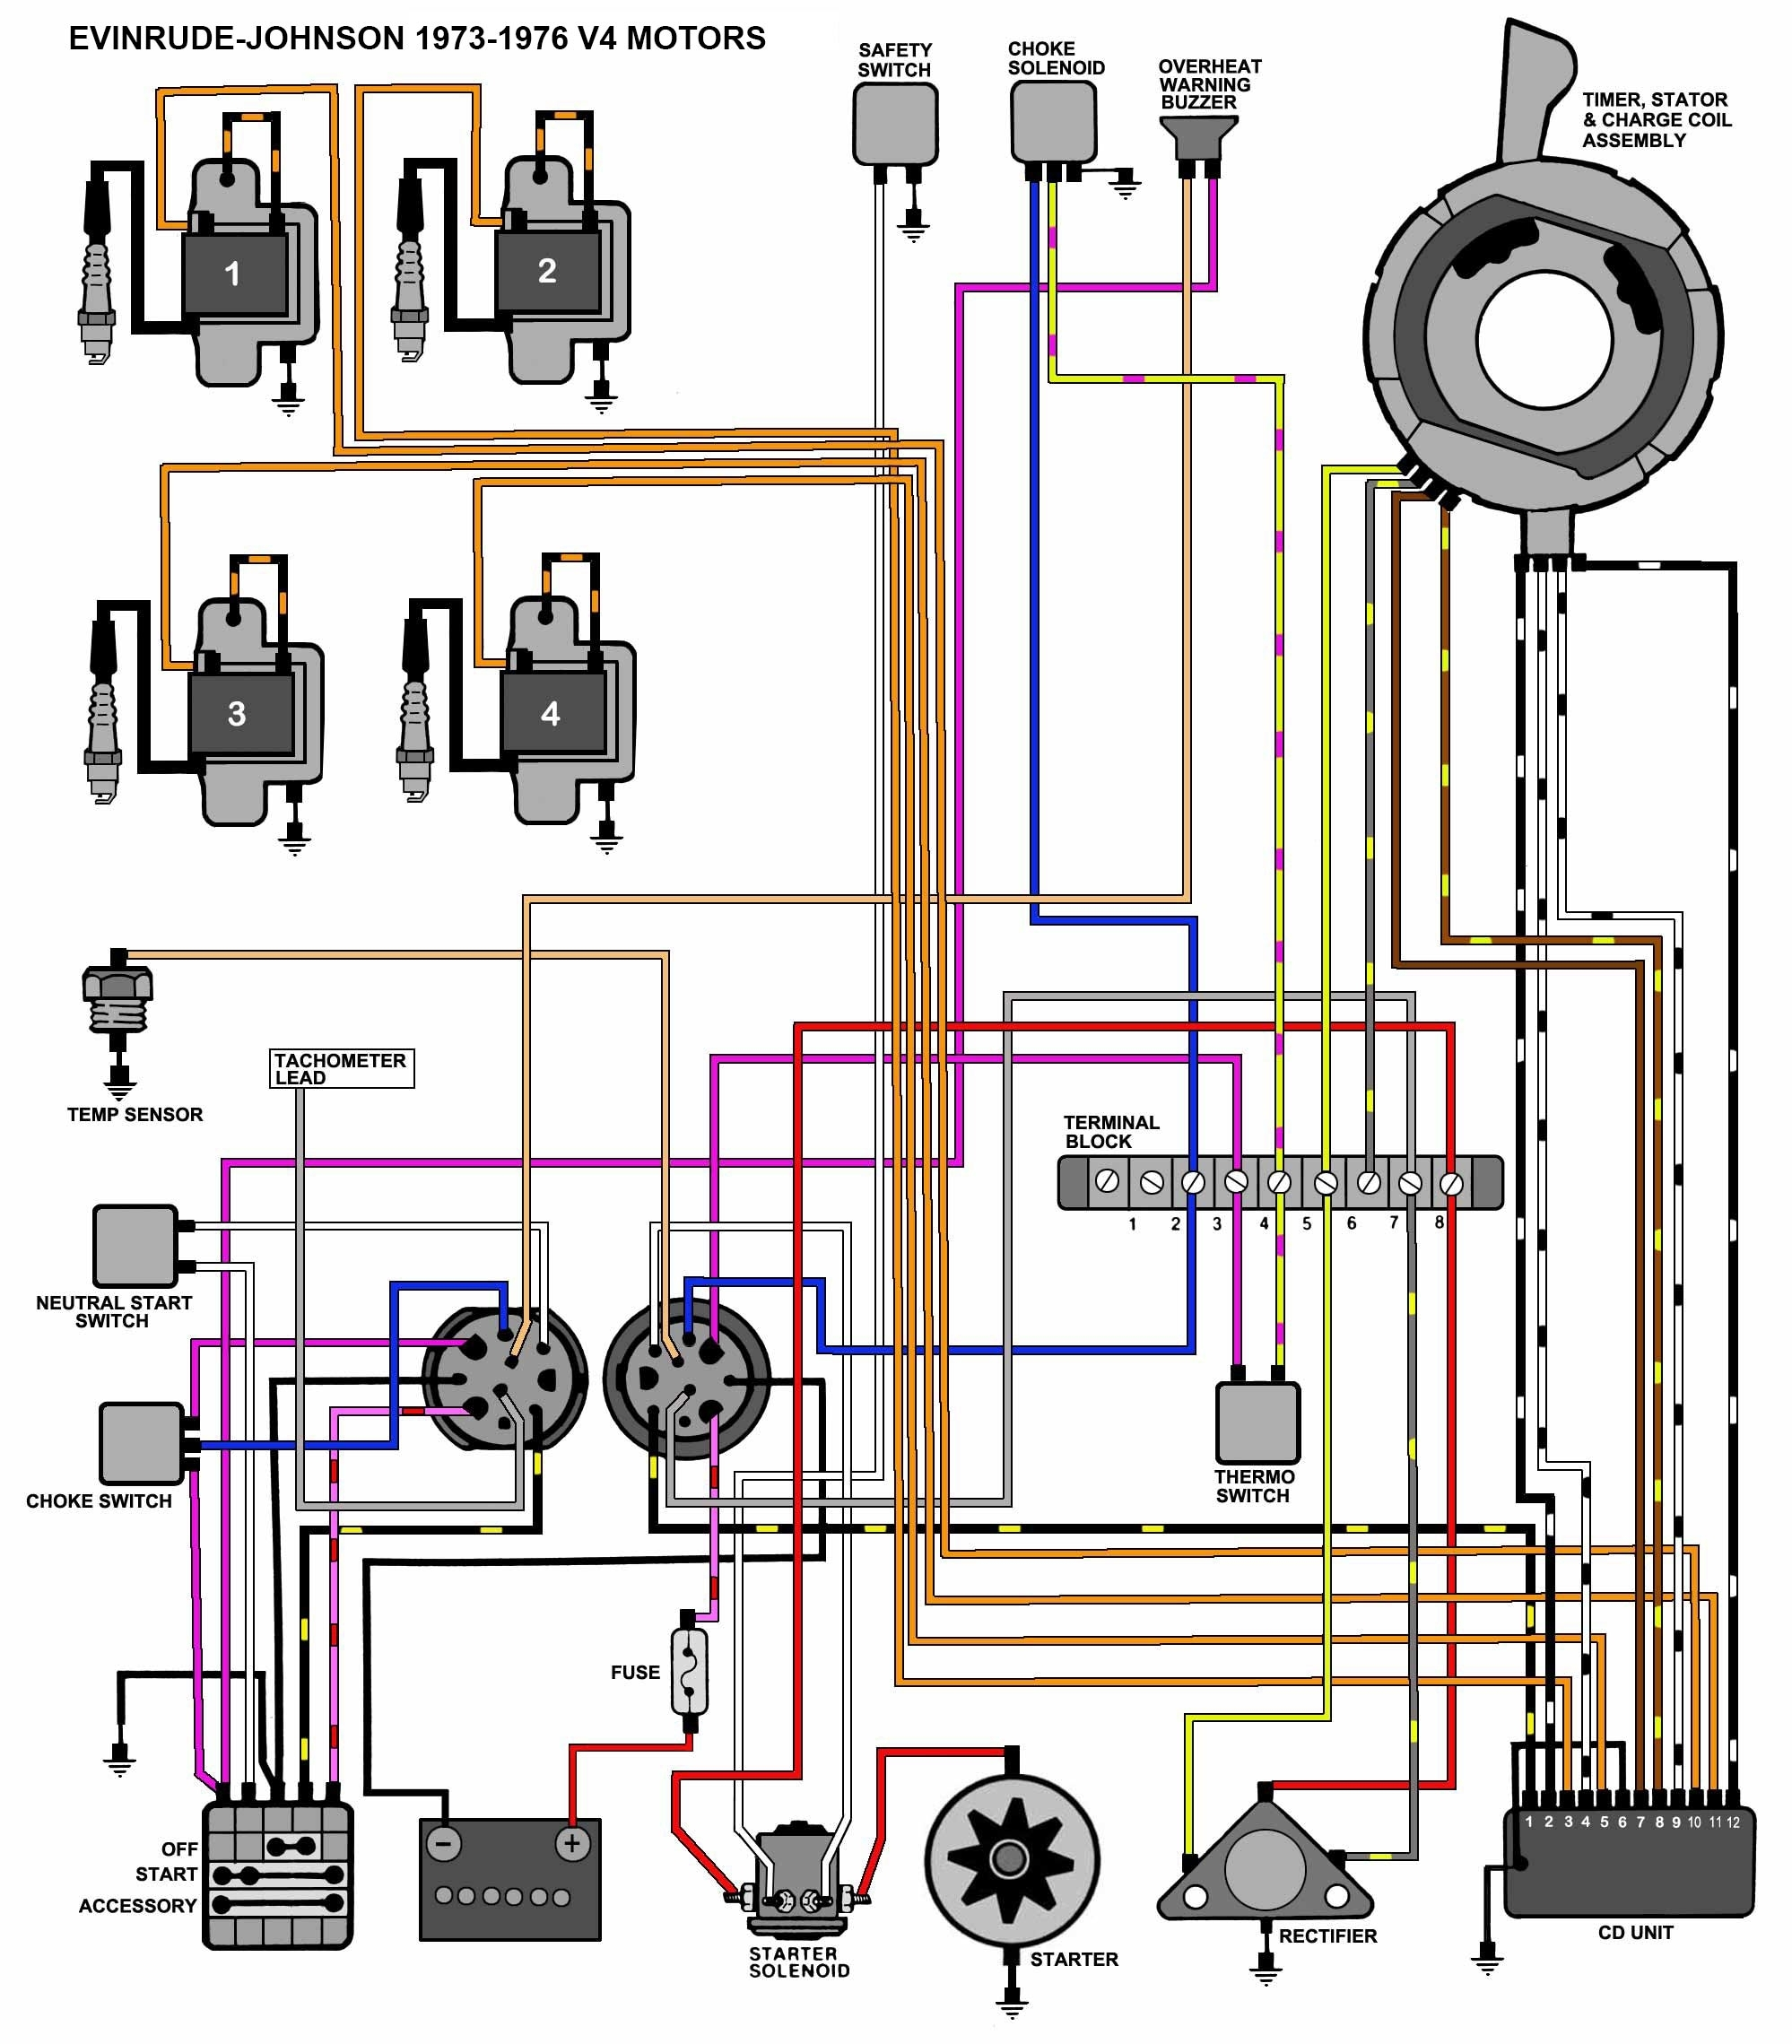 evinrude ignition switch wiring diagram with 1969 omc 55 wiring throughout 70 hp evinrude wiring diagram?resize\\=665%2C759\\&ssl\\=1 67 [ outboard motor ignition switch f5h268 f5h078 mp39100 mp39830 mp41070-2 wiring diagram at soozxer.org